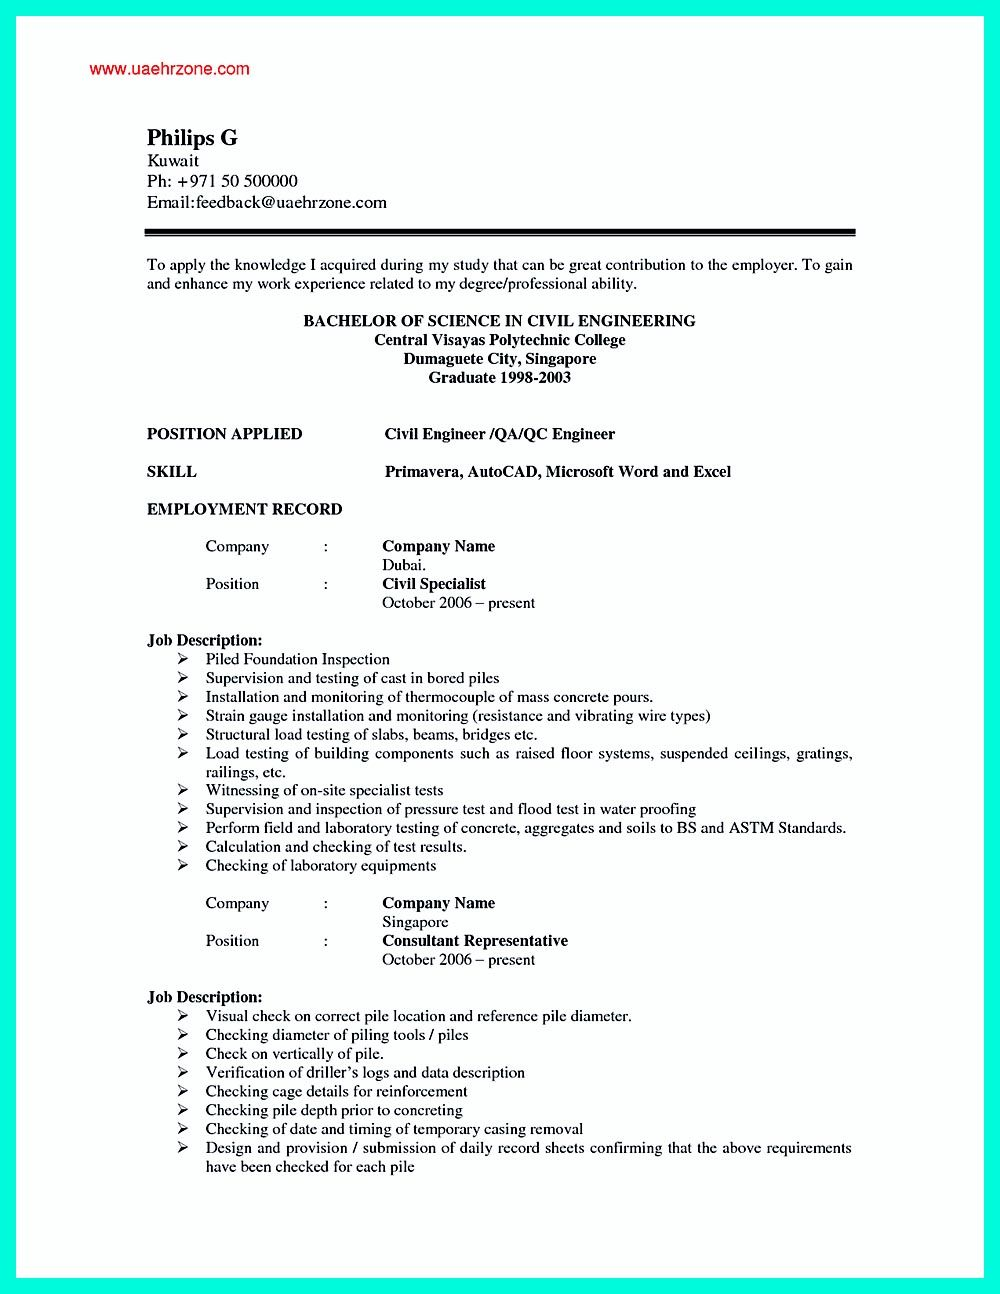 sample resume doctor experience certificate danaya us work for civil